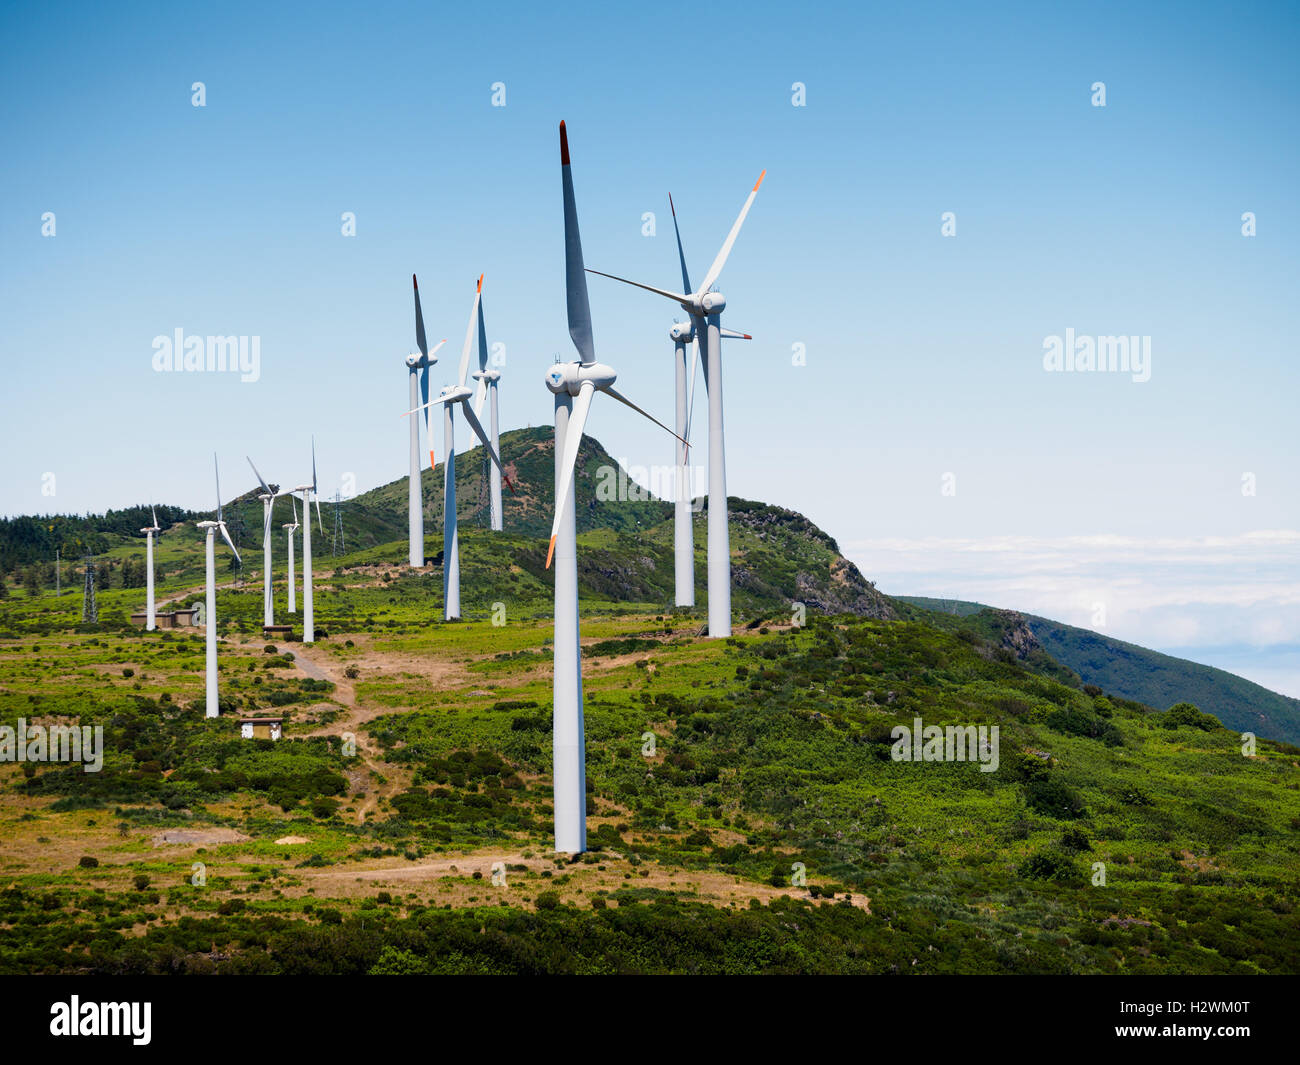 Madeira: Windmills on the Paul da Serra plateau, seen from the Bica da Cana hill - Stock Image